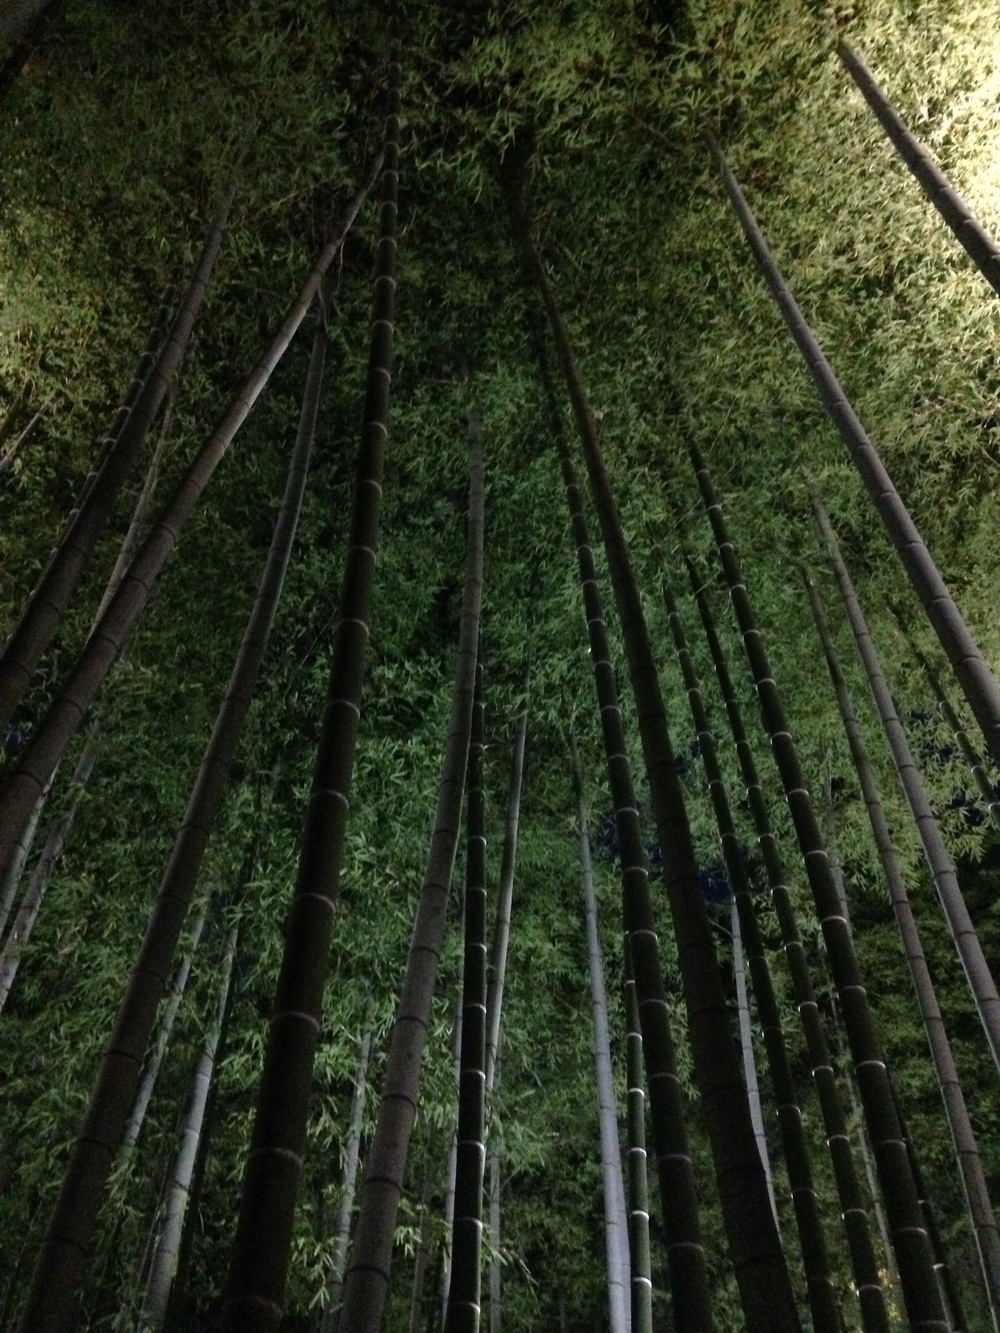 Beautiful bamboo forest, no filters or editing needed.